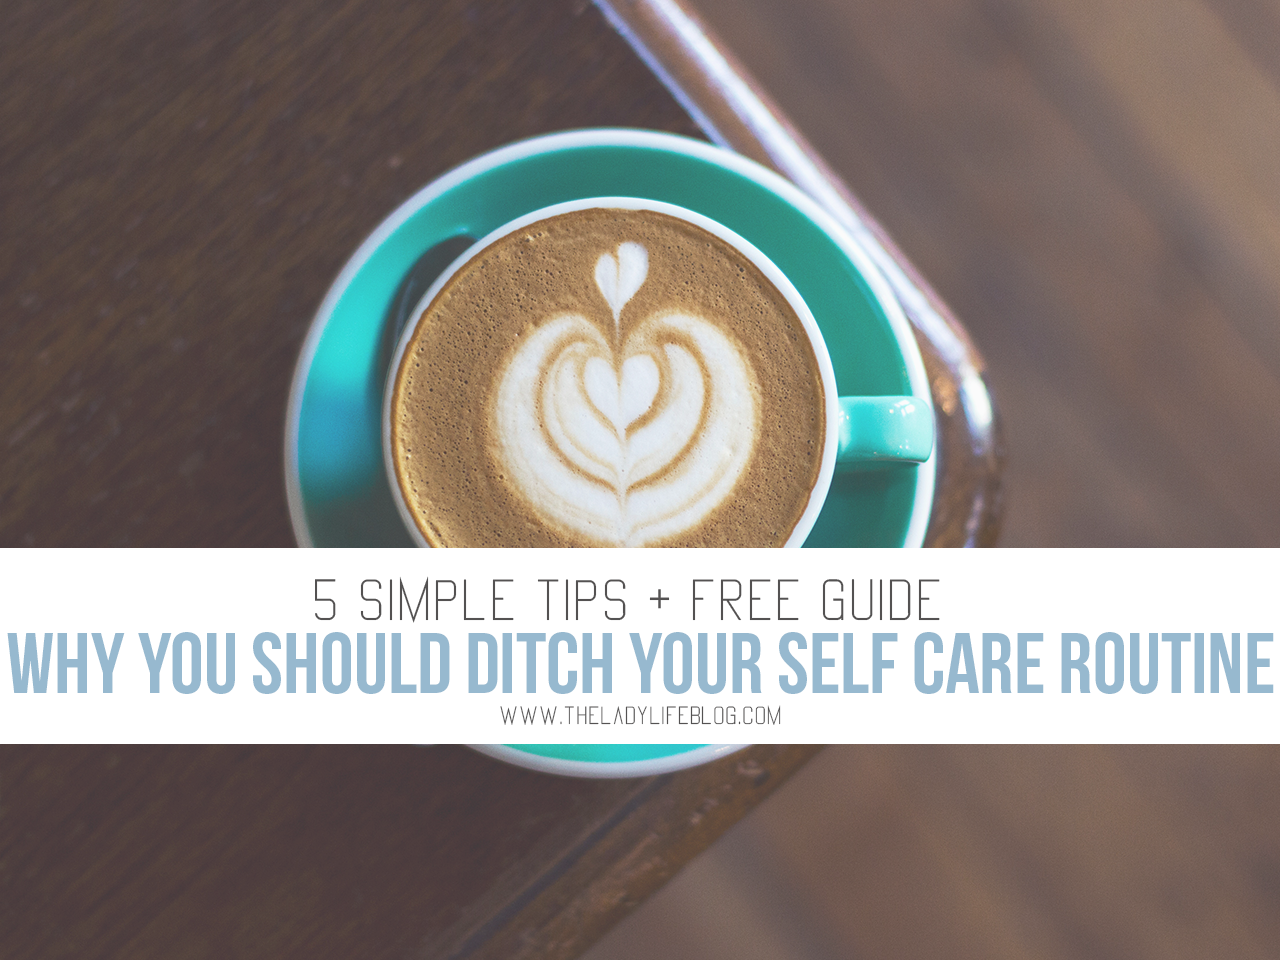 Ditch The Self-Care Routine For These 5 Simple Tips